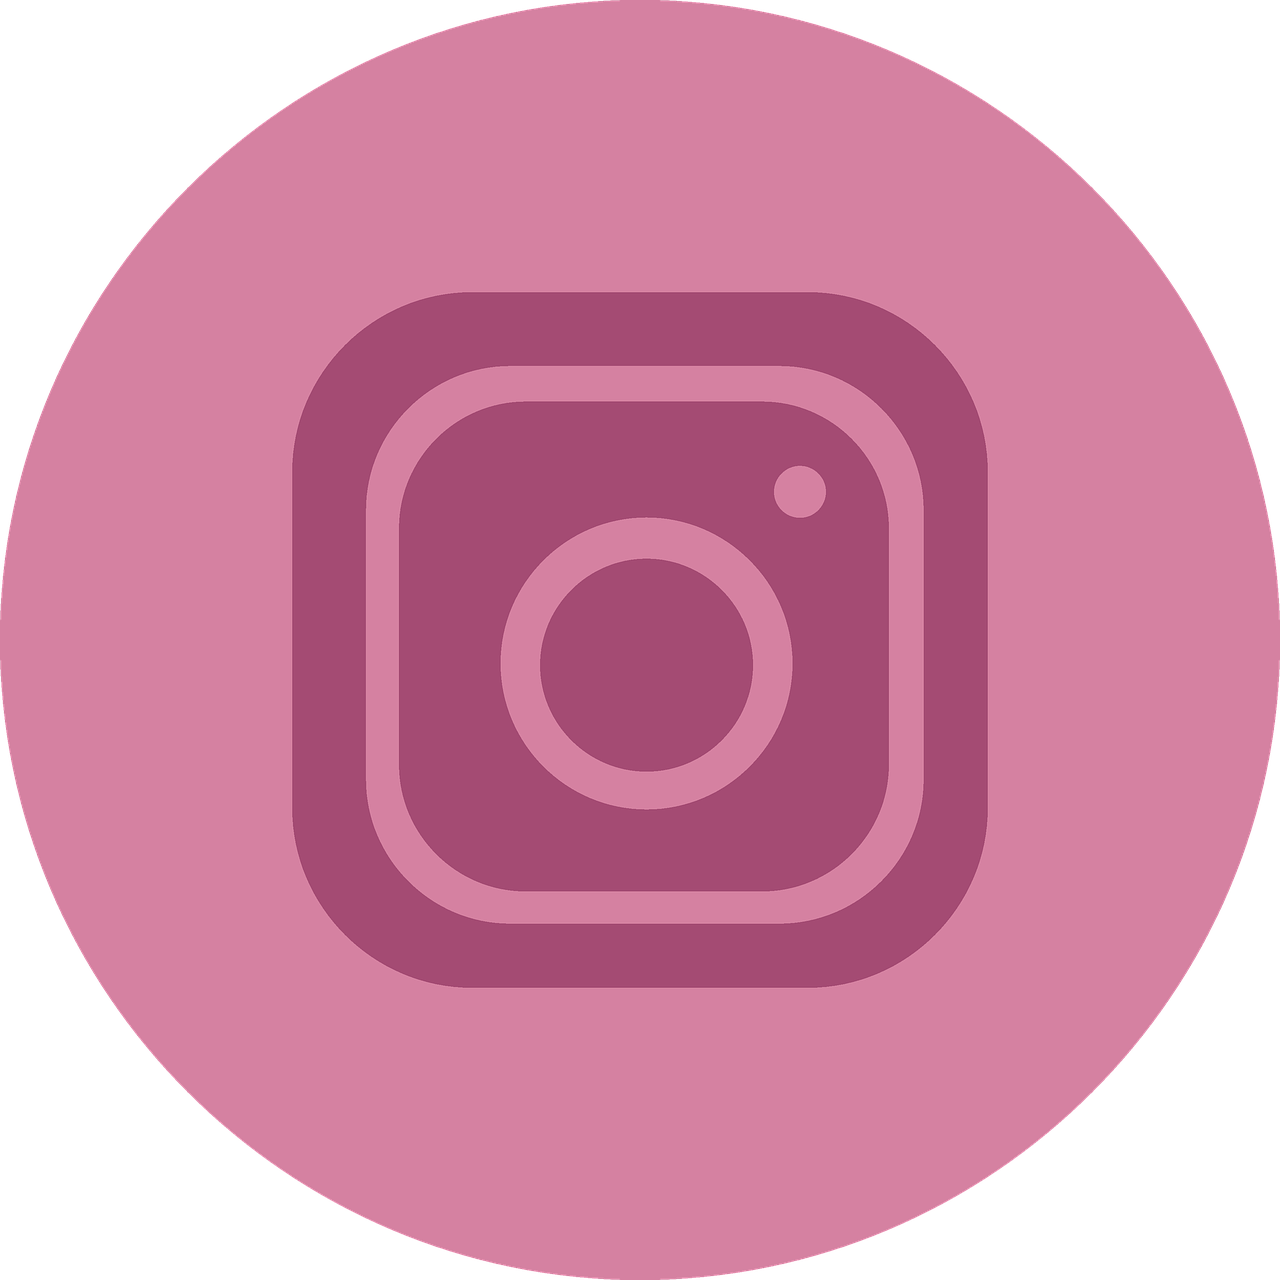 Instagram Icons Media University Computer Facebook Kaohsiung PNG Image